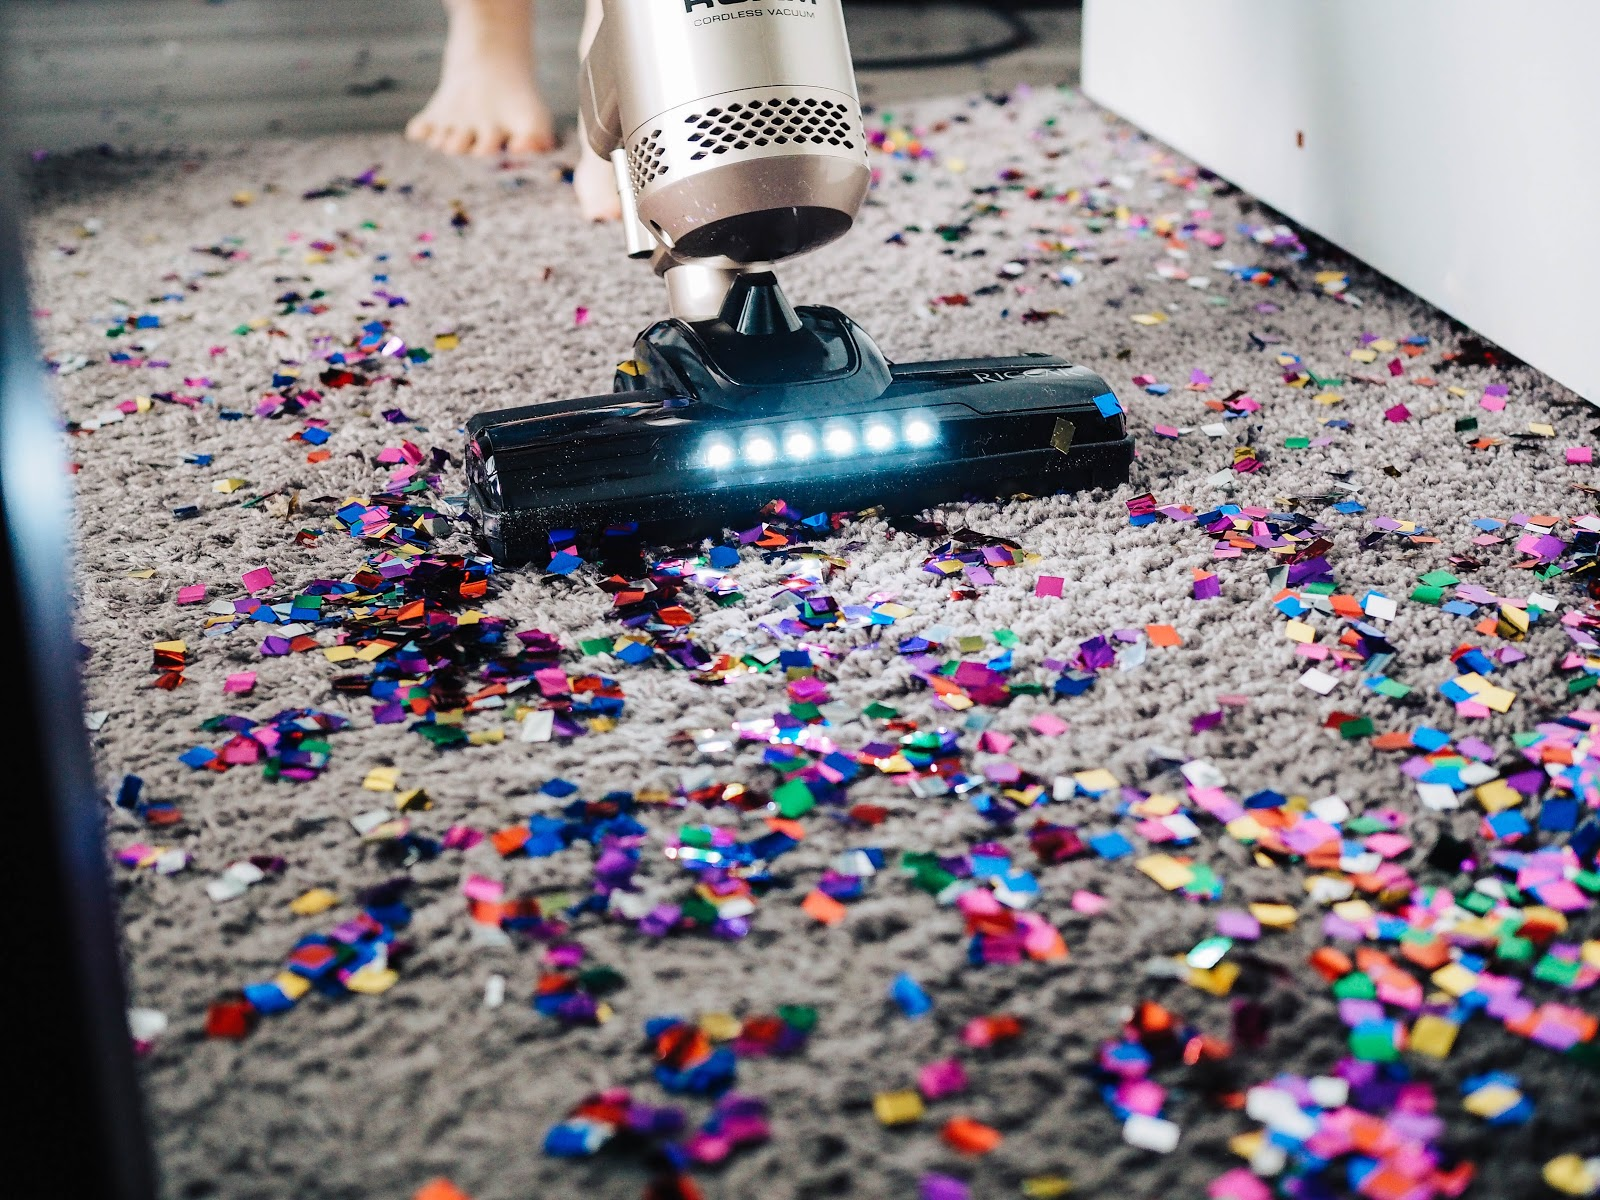 vacuuming really messy carpet with confetti